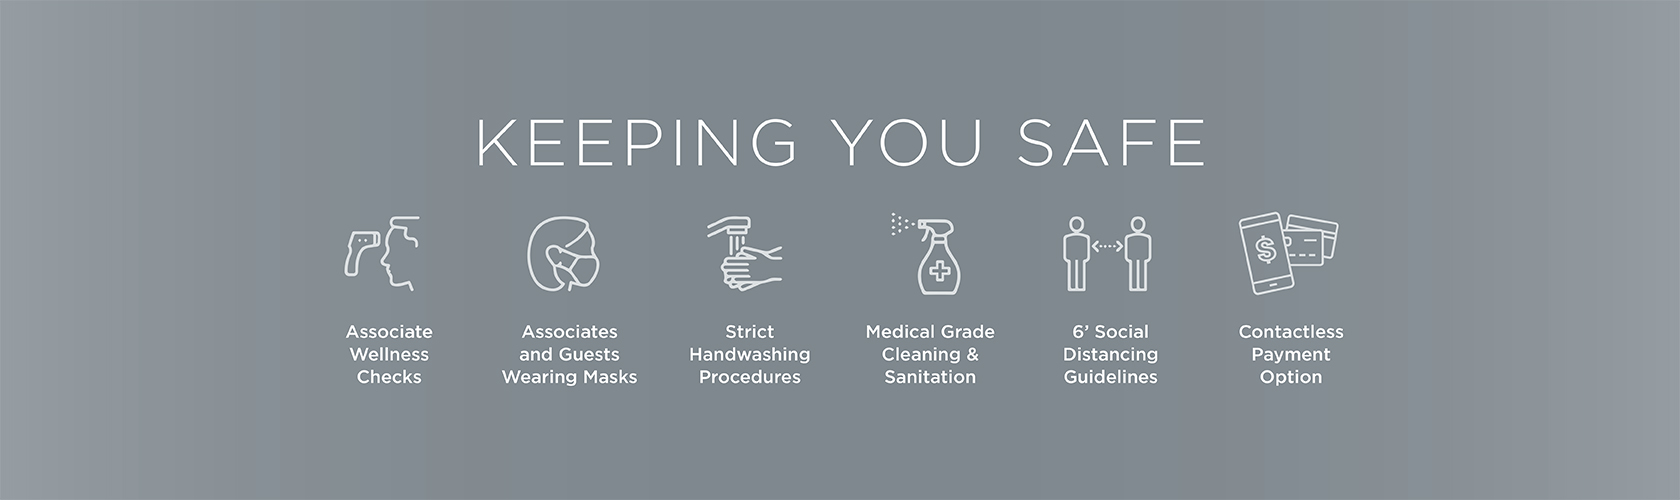 Keeping Our Associates Safe. Associate Wellness Checks, Associates and Guests Wearing Masks, Strict Handwashing Procedures, Medical Grade Cleaning & Sanitation, 6' Social Distancing Guidelines and Contactless Payment Options.